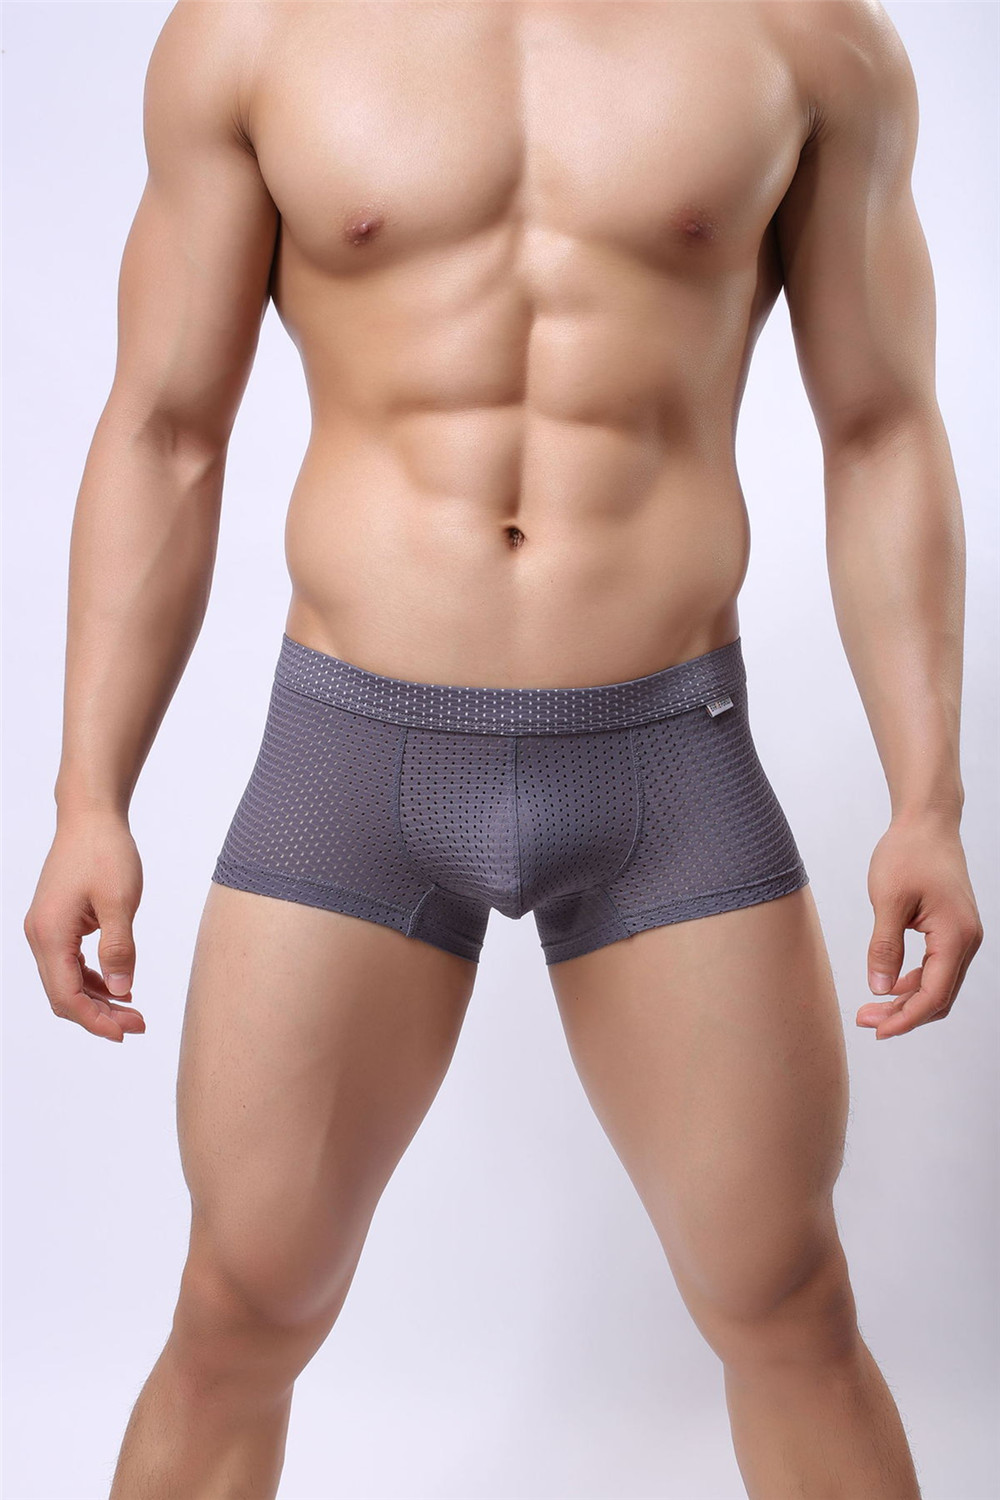 Brand Boxer shorts Men gay Underwear Mesh Breathable Men solid mesh underwear U Convex Pouch Design Sexy Boxers Male underpants